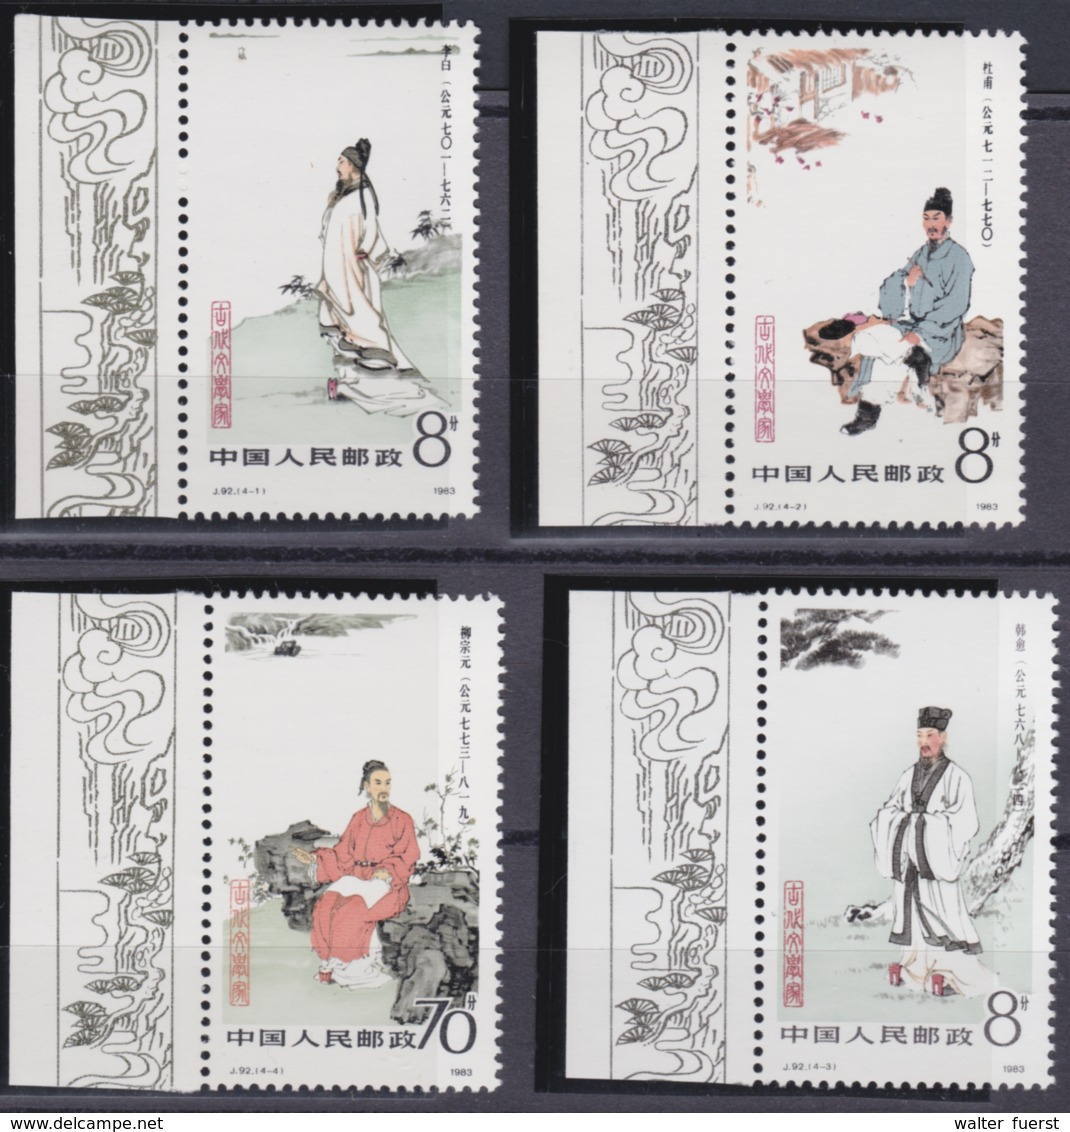 """CHINA 1983, """"Poets And Philosophs"""", Serie Unmounted Mint, Superb - Colecciones & Series"""